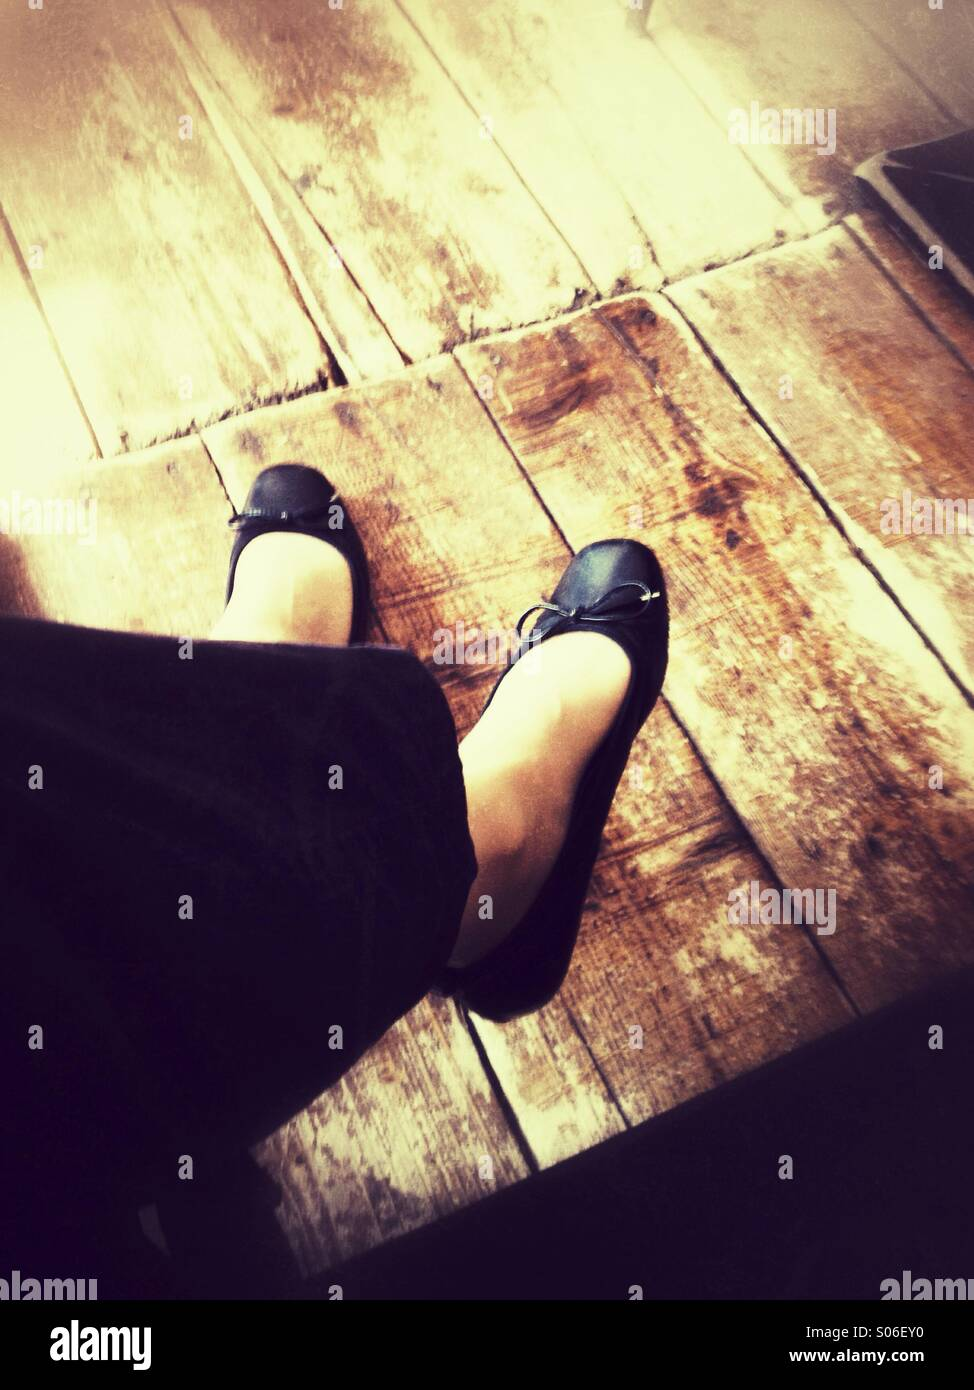 Woman's feet under the table above an Old wooden floor. Retro styled postprocessing. - Stock Image